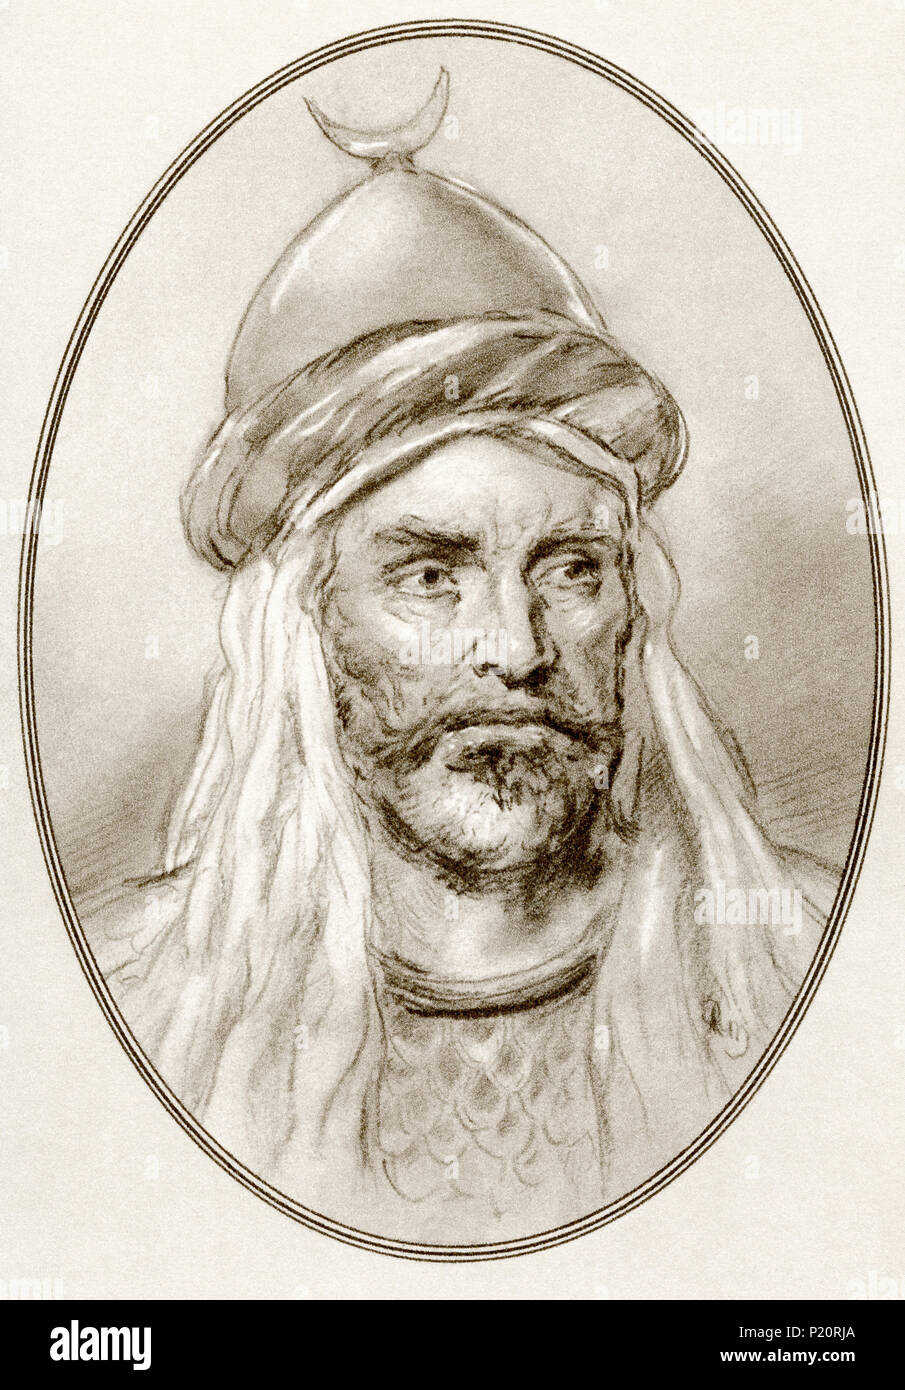 An-Nasir Salah ad-Din Yusuf ibn Ayyub, aka Salah ad-Din or Saladin, 1137 – 1193.  First sultan of Egypt and Syria and the founder of the Ayyubid dynasty.  Illustration by Gordon Ross, American artist and illustrator (1873-1946), from Living Biographies of Famous Rulers. - Stock Image